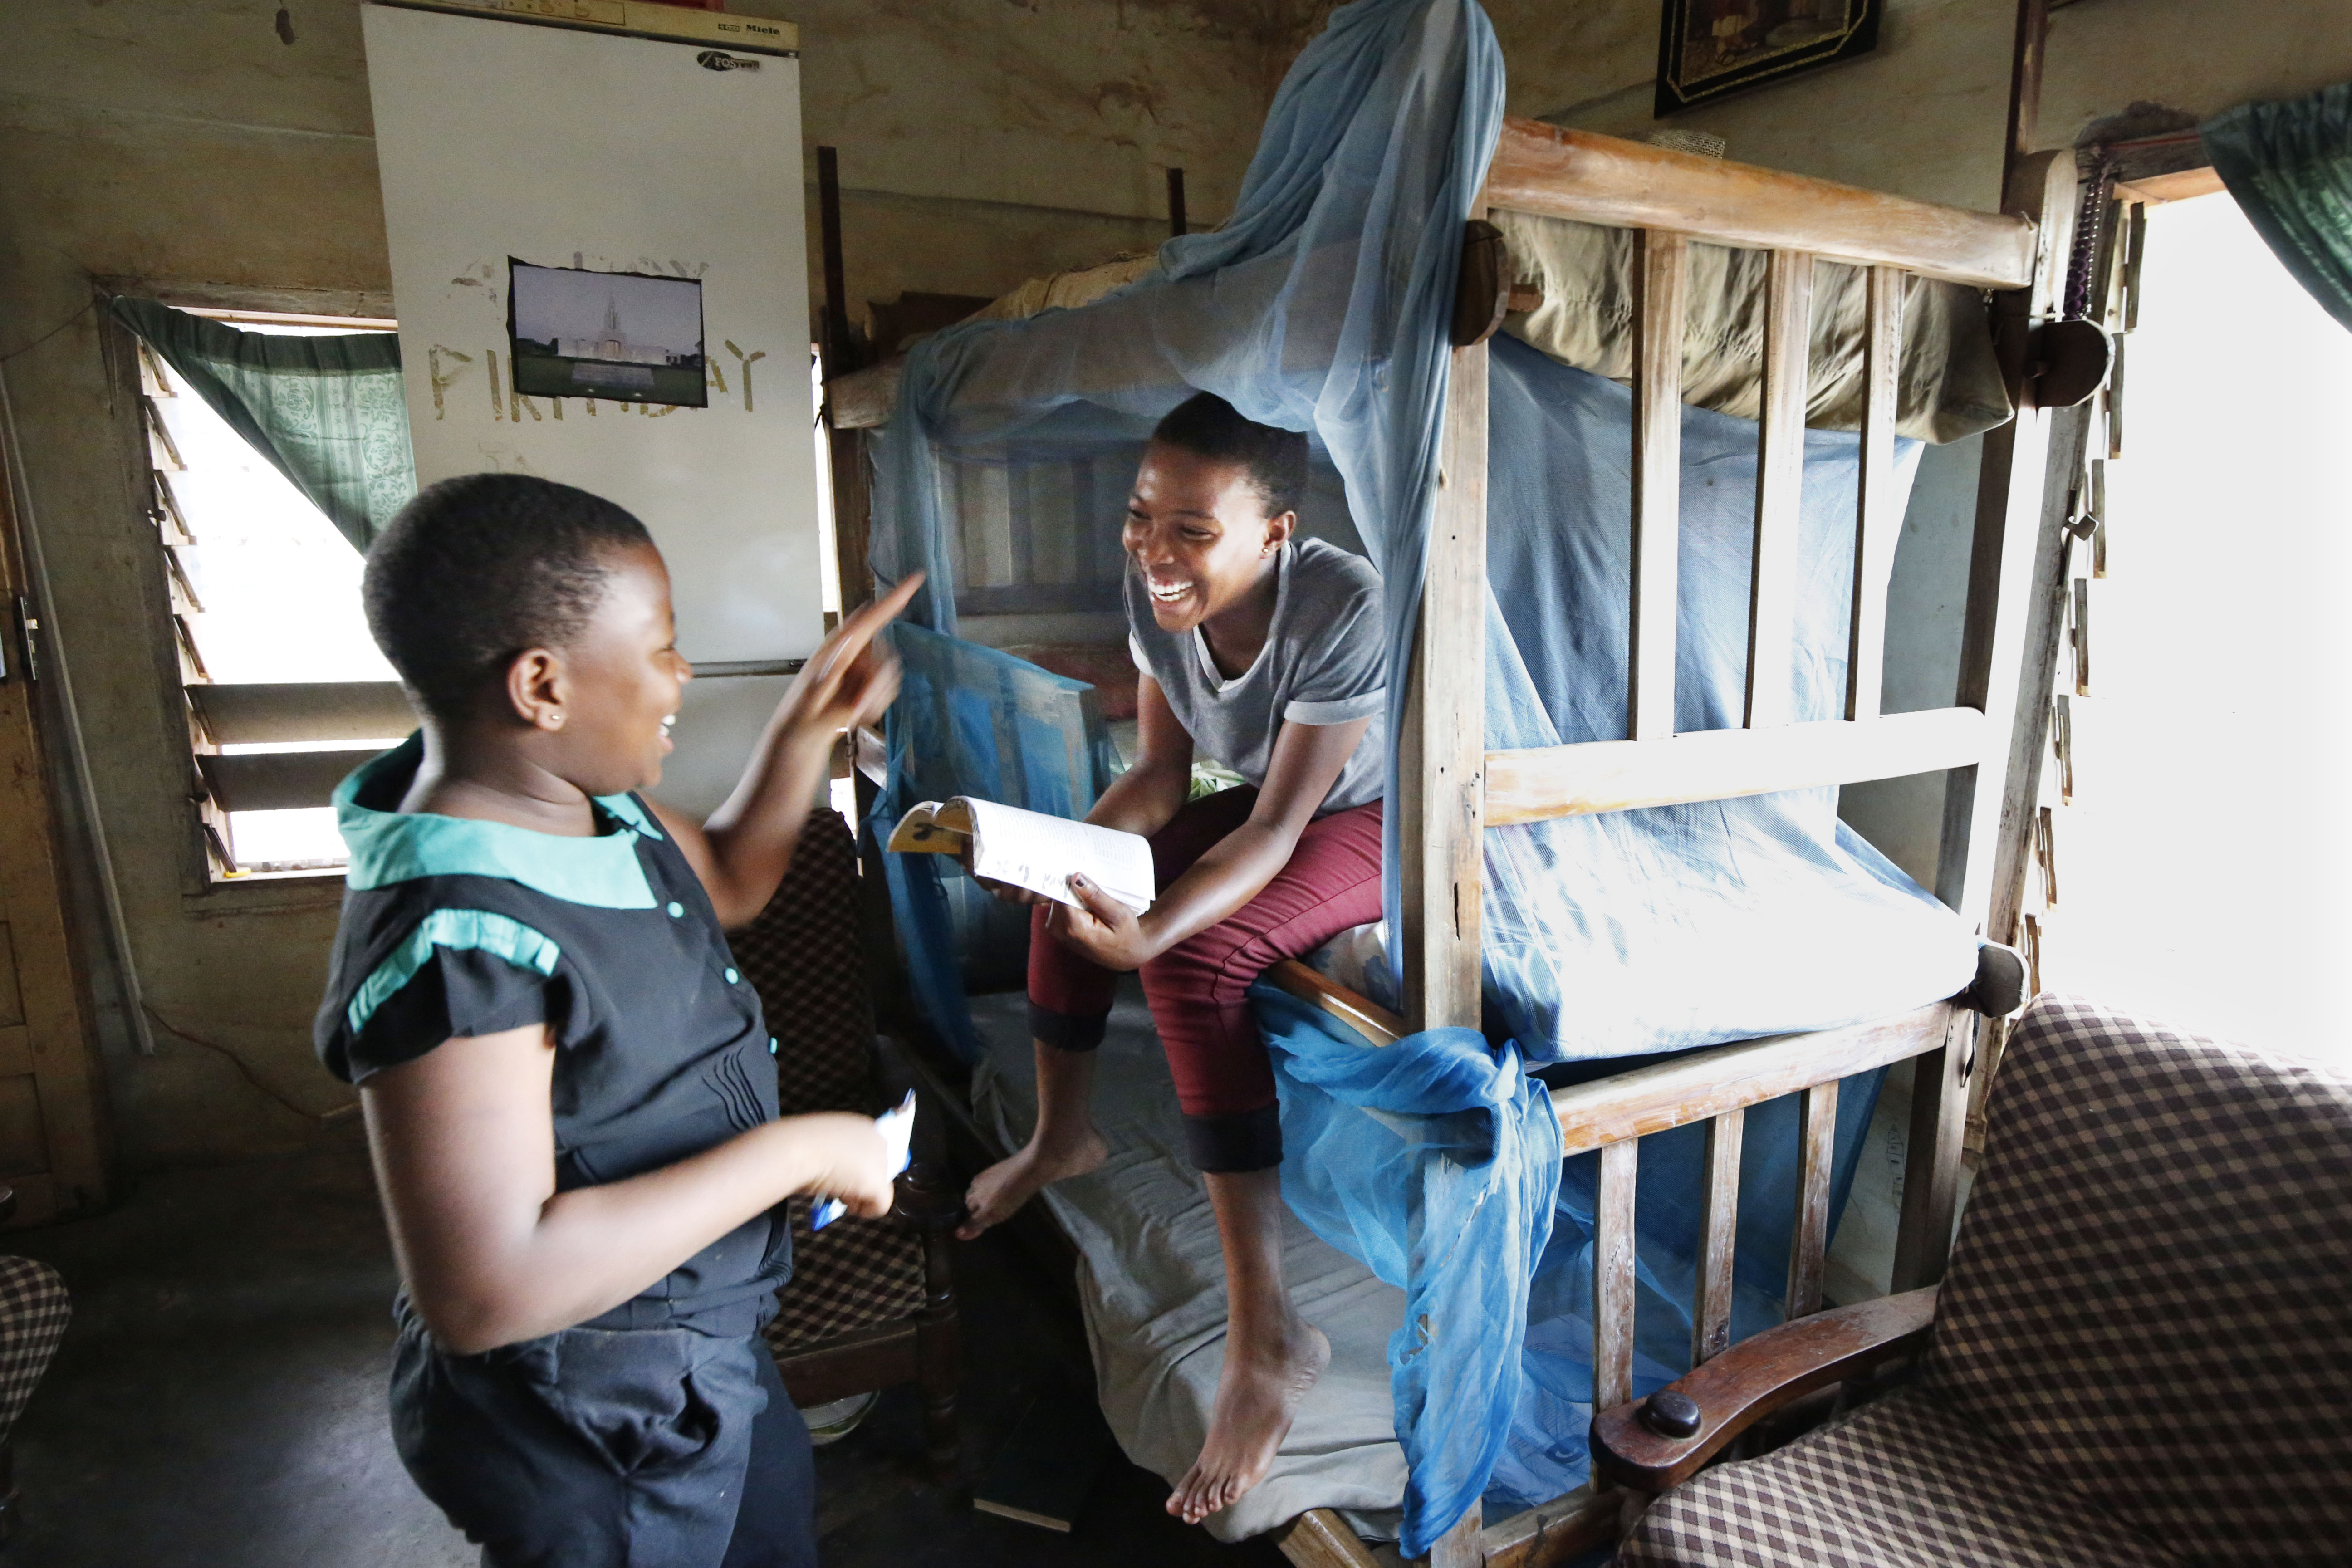 Dora, right, and Esther Samche joke with each other in the living room of their home in Kumasi, Ghana, on Saturday, April 21, 2018. Dora is sitting in her bed draped with mosquito netting.